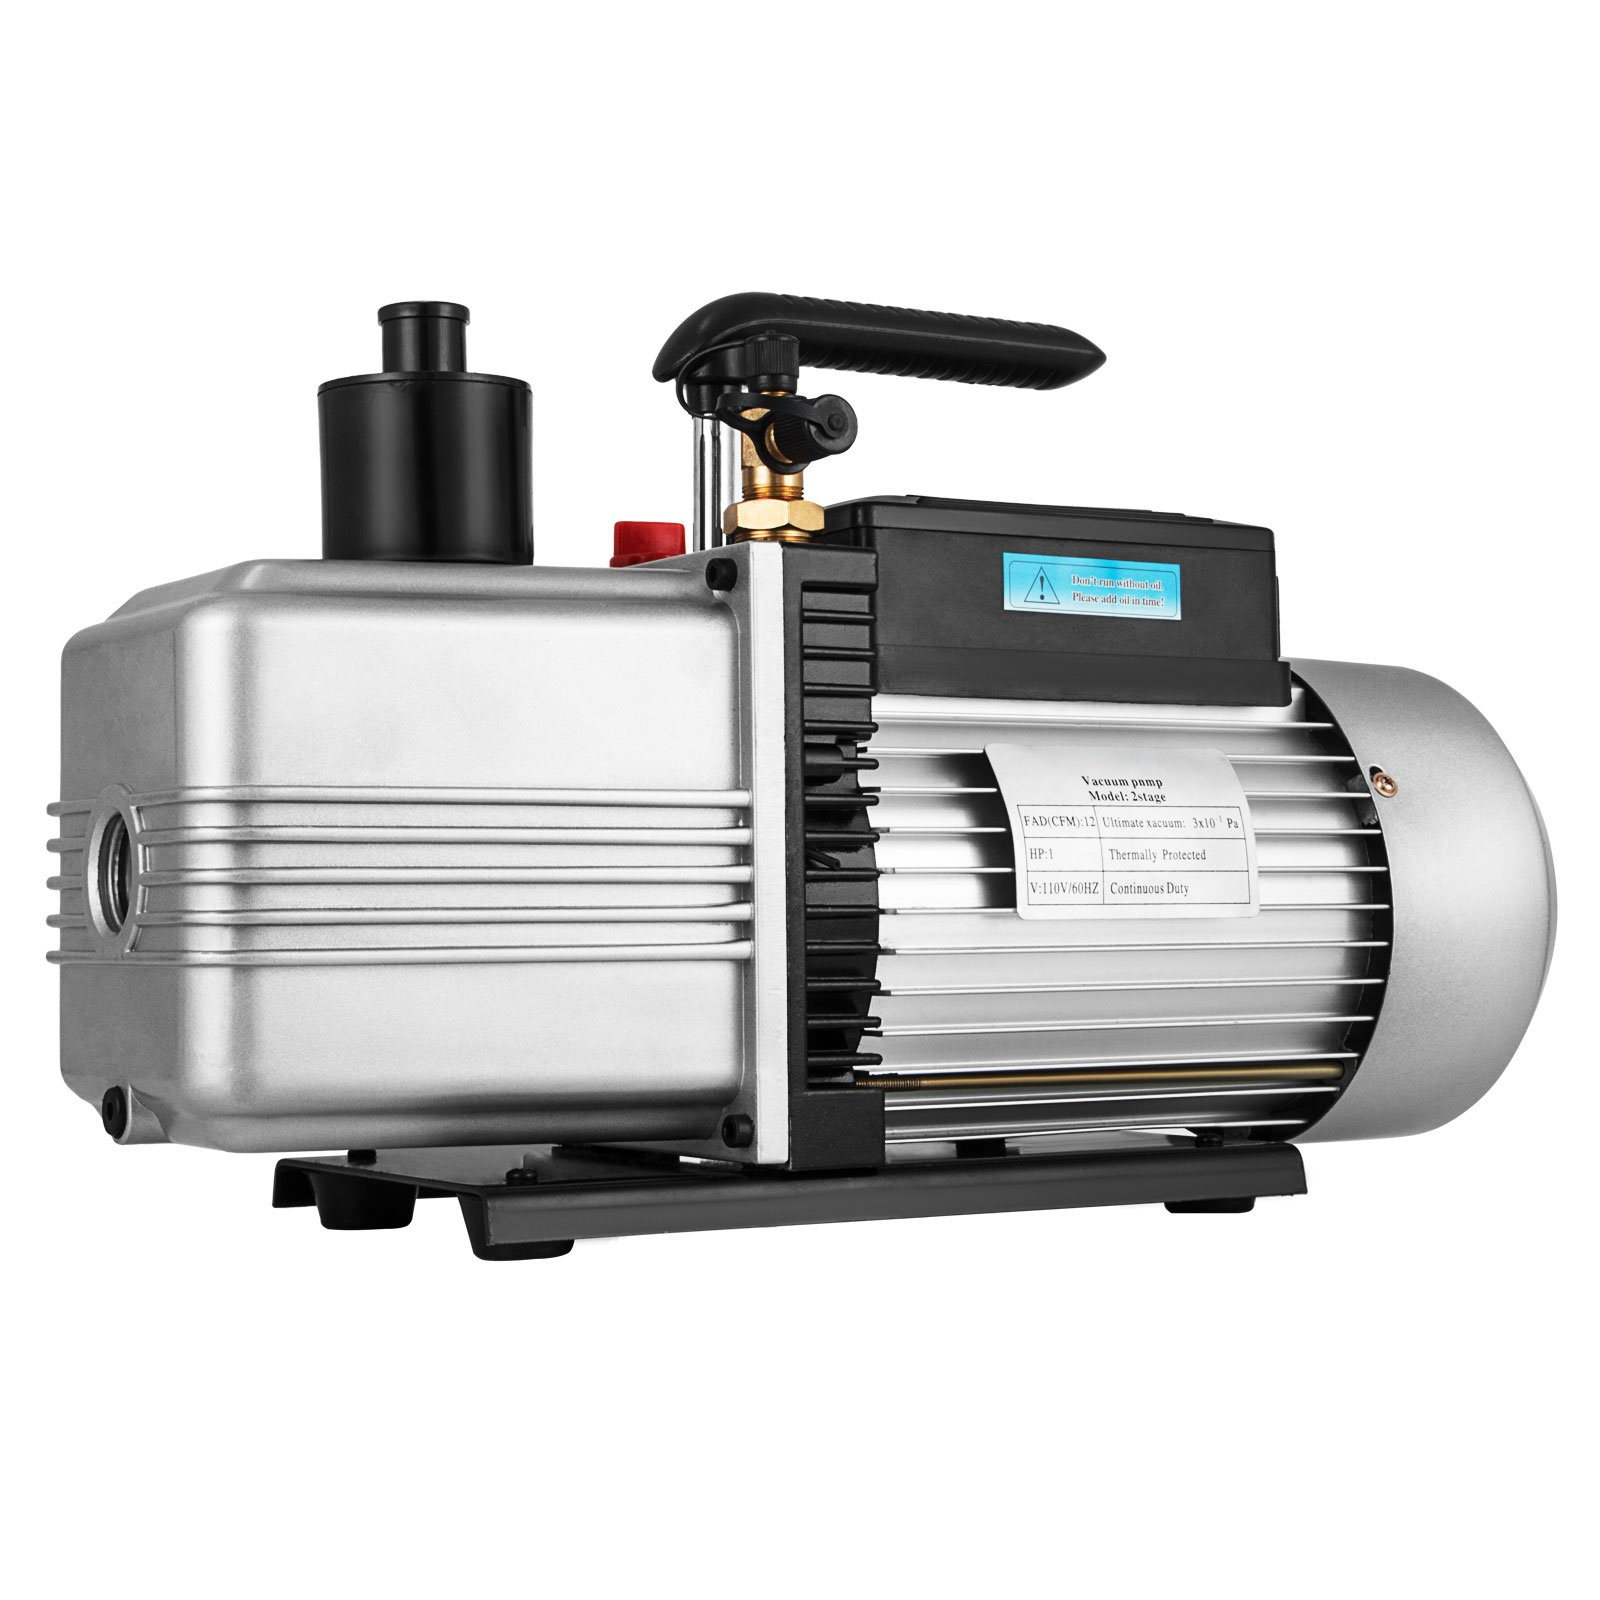 Bestauto Vacuum Pump 12CFM 1HP Vane Vacuum Pump Two Stage HVAC Rotary Auto AC Refrigerant Vacuum Pump for Wine or Epoxy, Milking Cow or Lamb, Medical, Food Processing by Bestauto (Image #1)